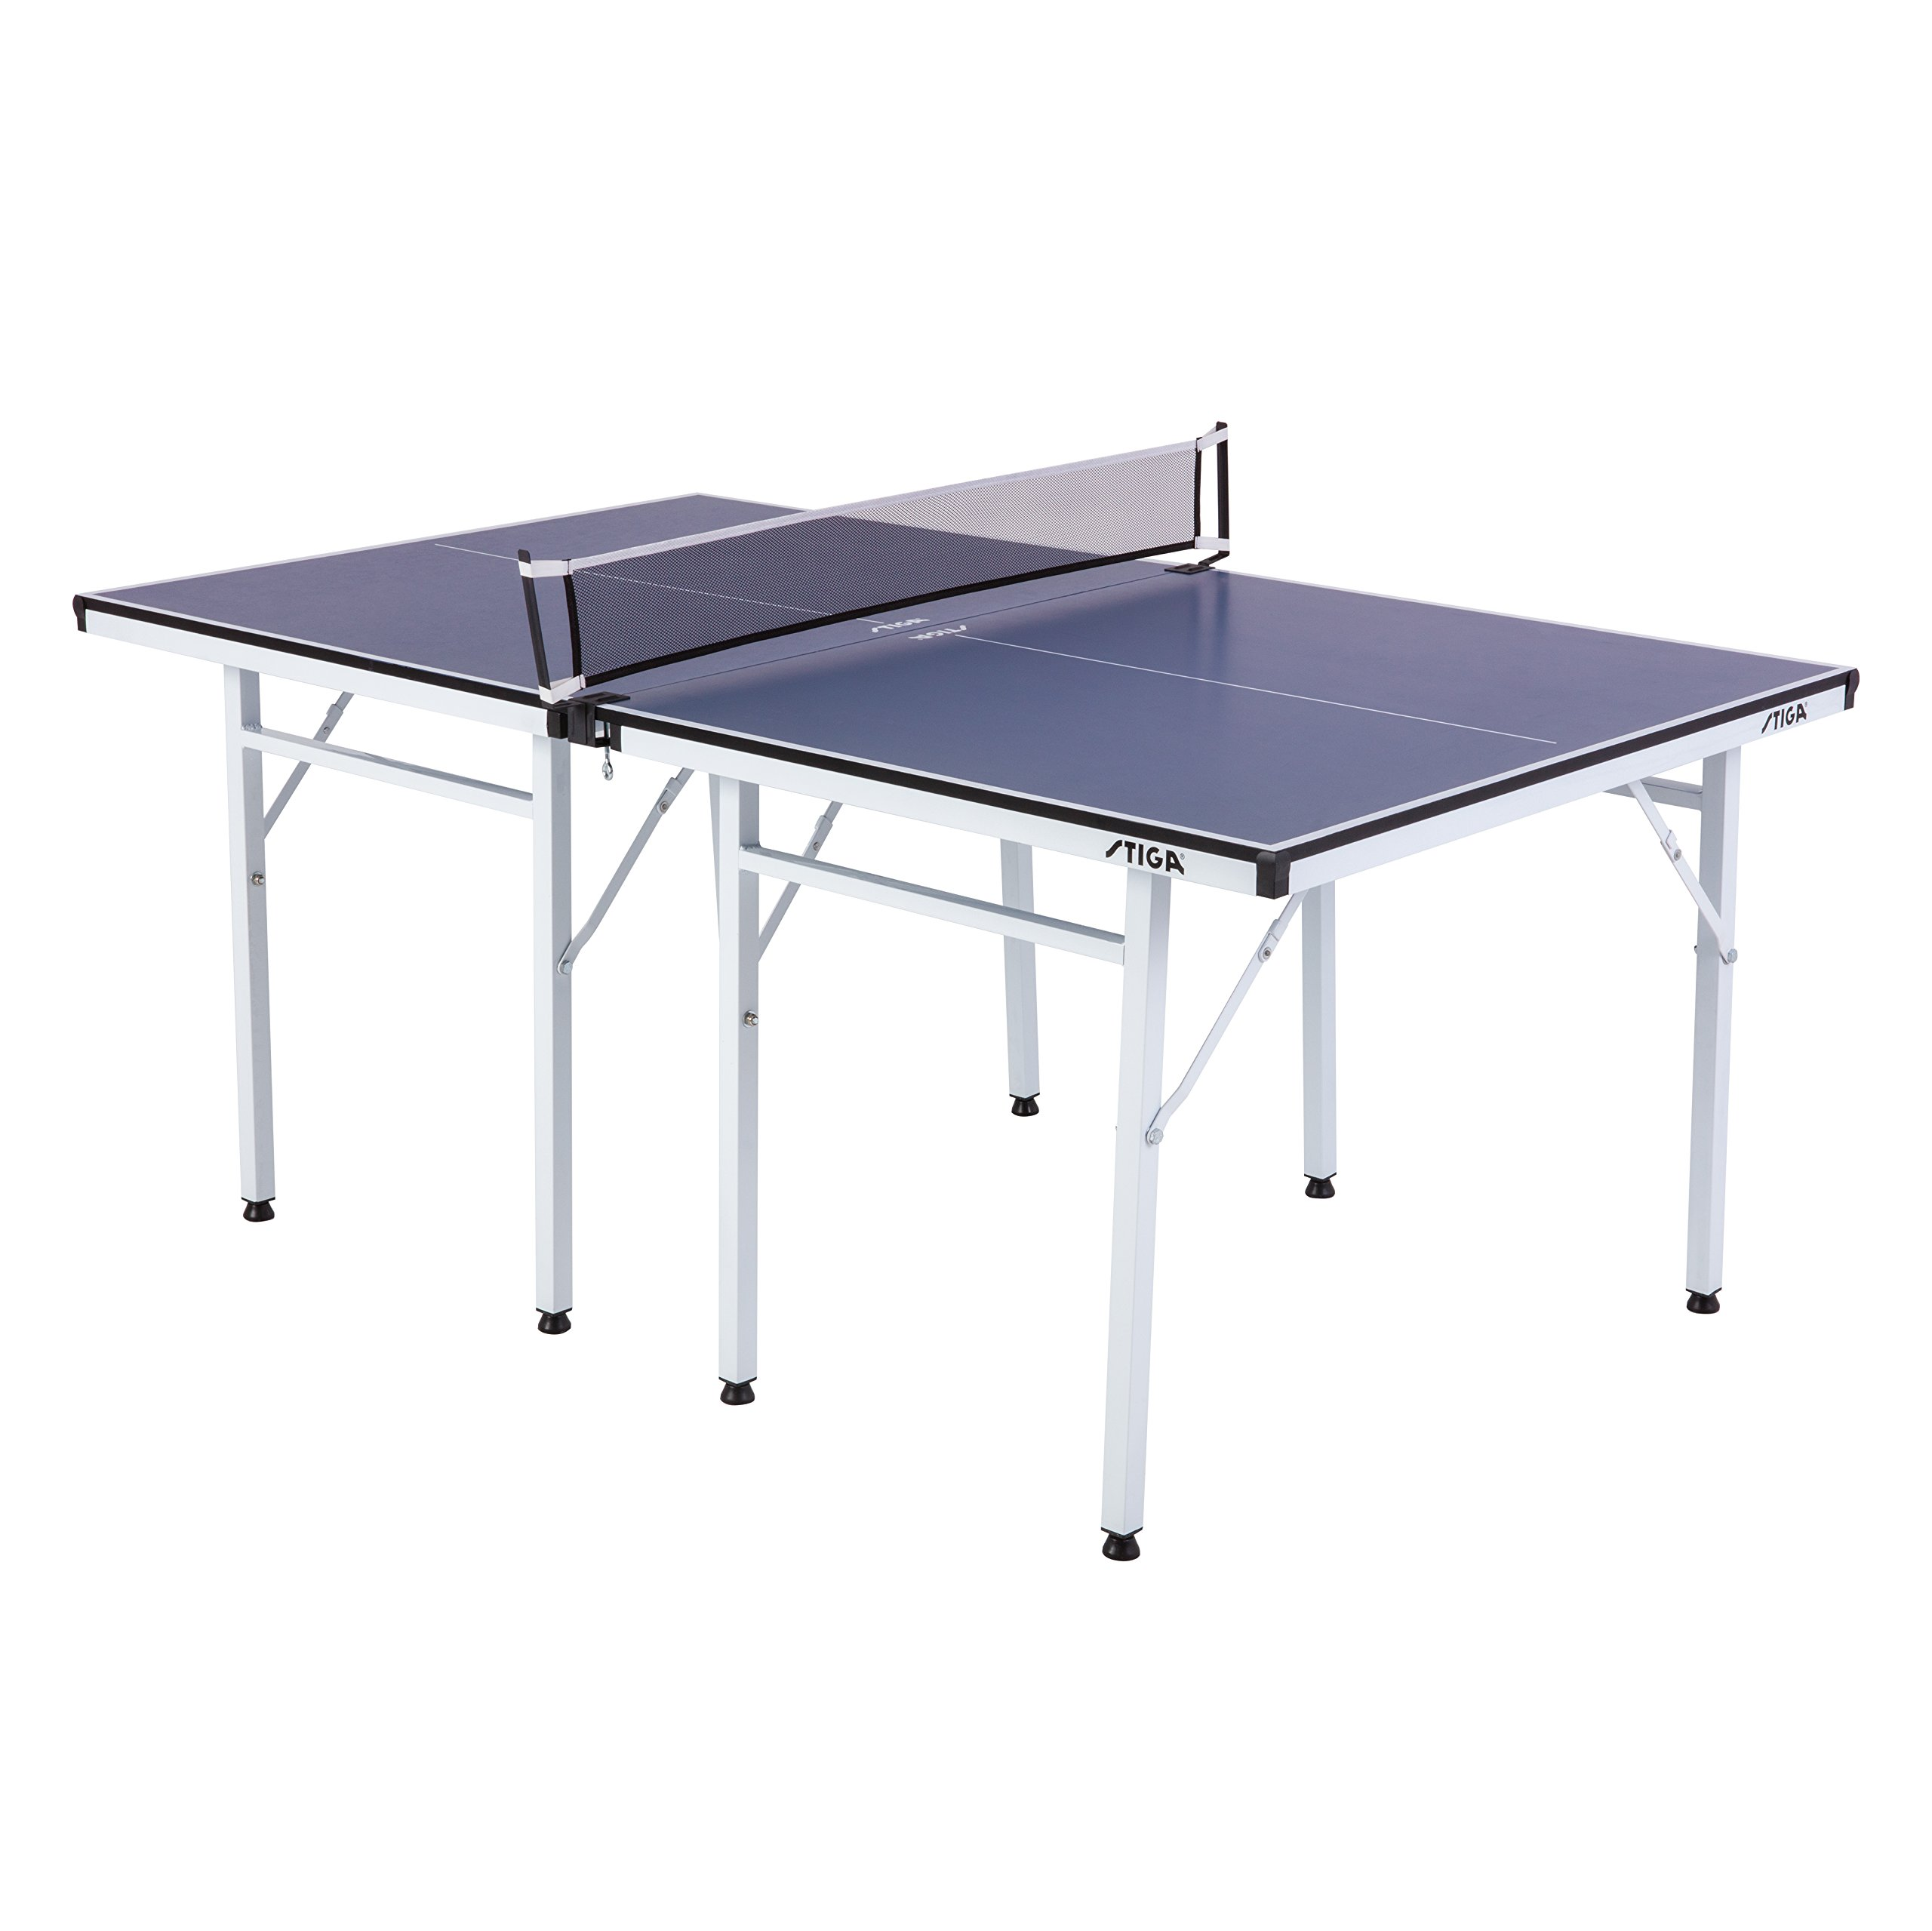 STIGA Space Saver Table Tennis Table by STIGA